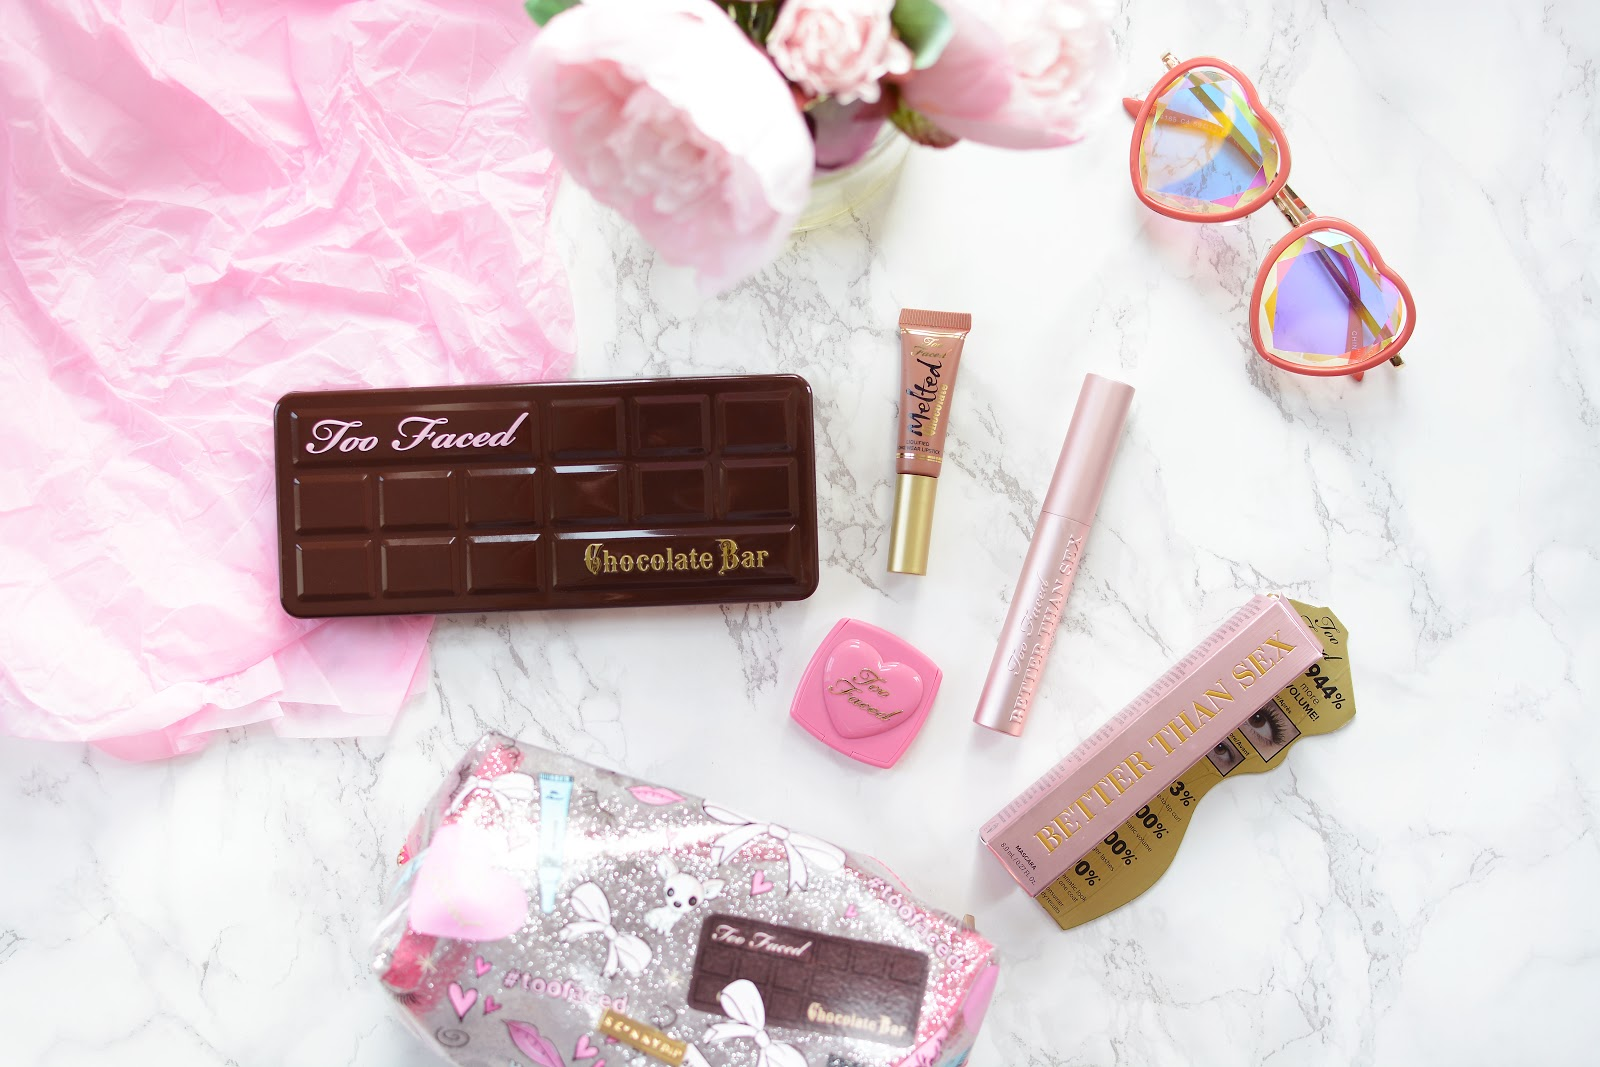 Too Faced x Skinnydip London Collaboration